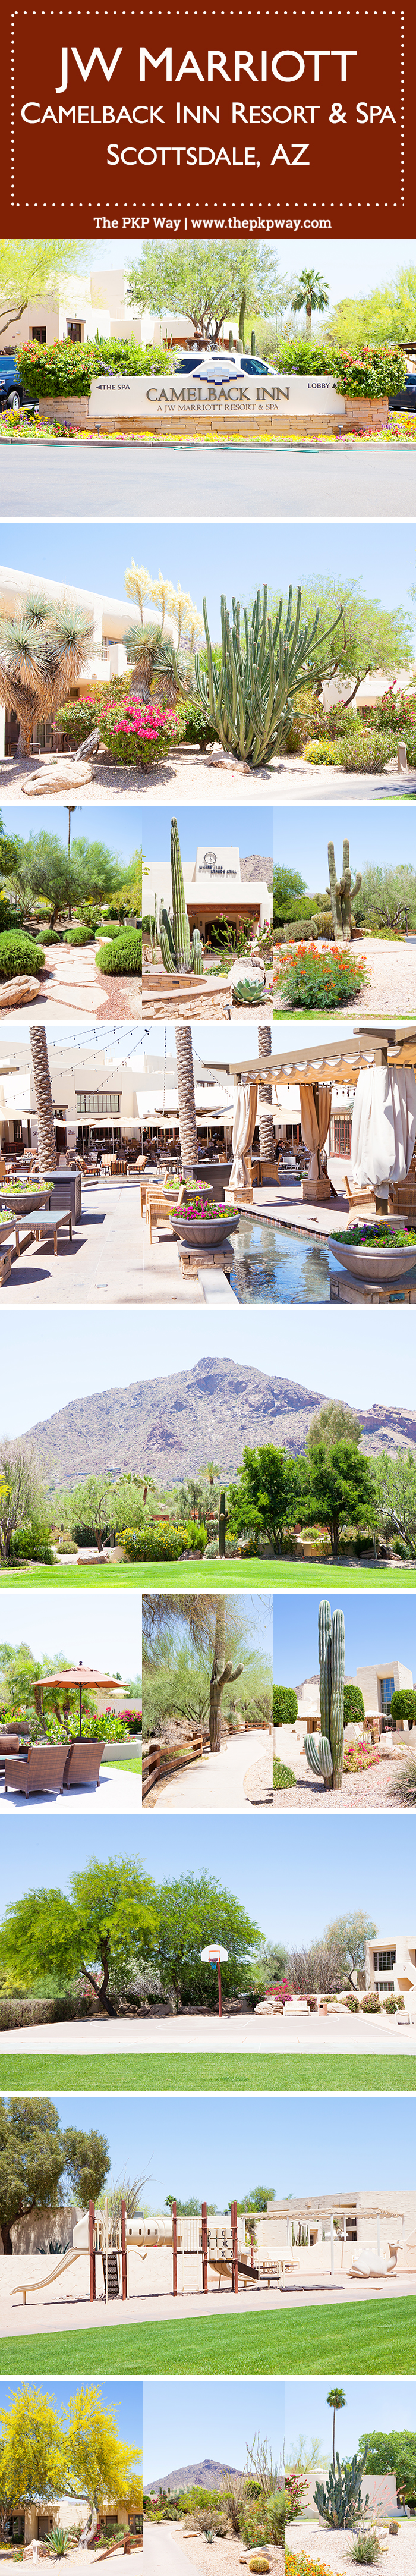 For our second wedding anniversary, we went to Scottsdale, Arizona and stayed at the amazing JW Marriott Camelback Inn Resort & Spa. Join me as I give a tour of the property, share our experiences with the resort, help you decide where to eat, and tell you all about how we got around!